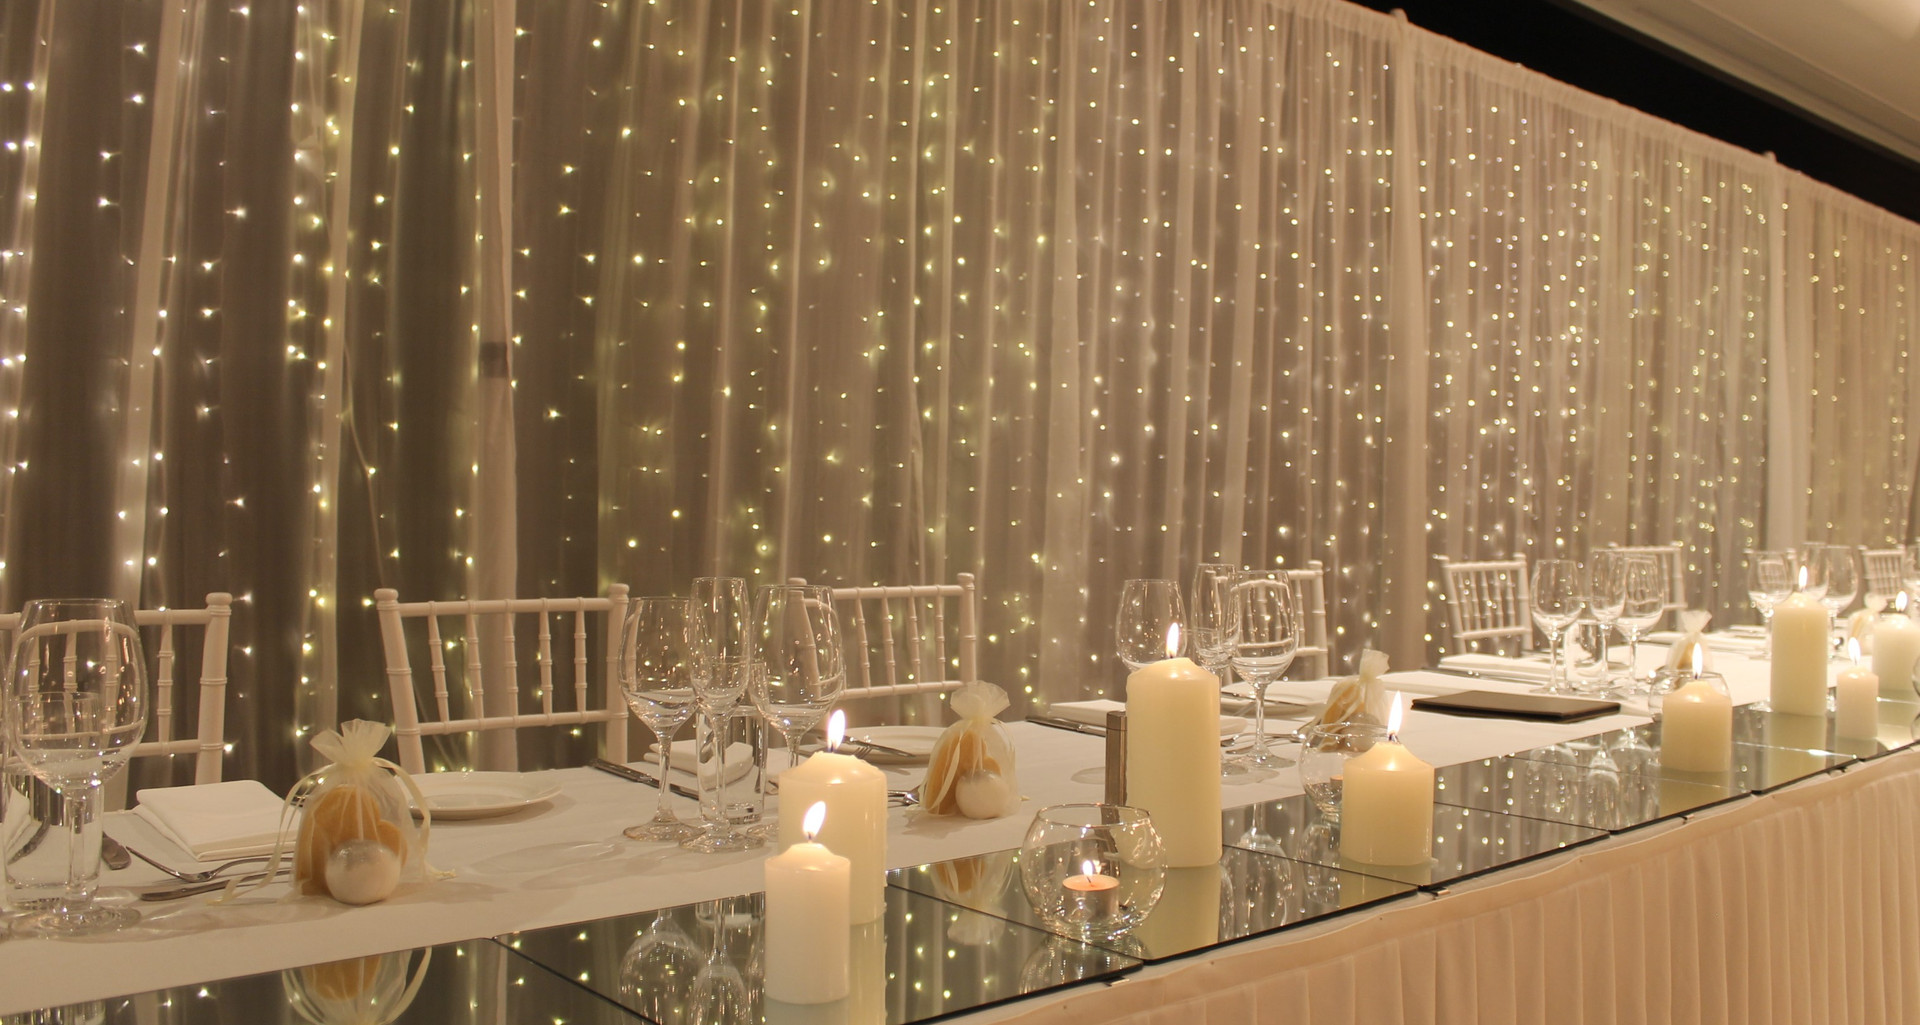 Wedding Fairy Light Backdrop